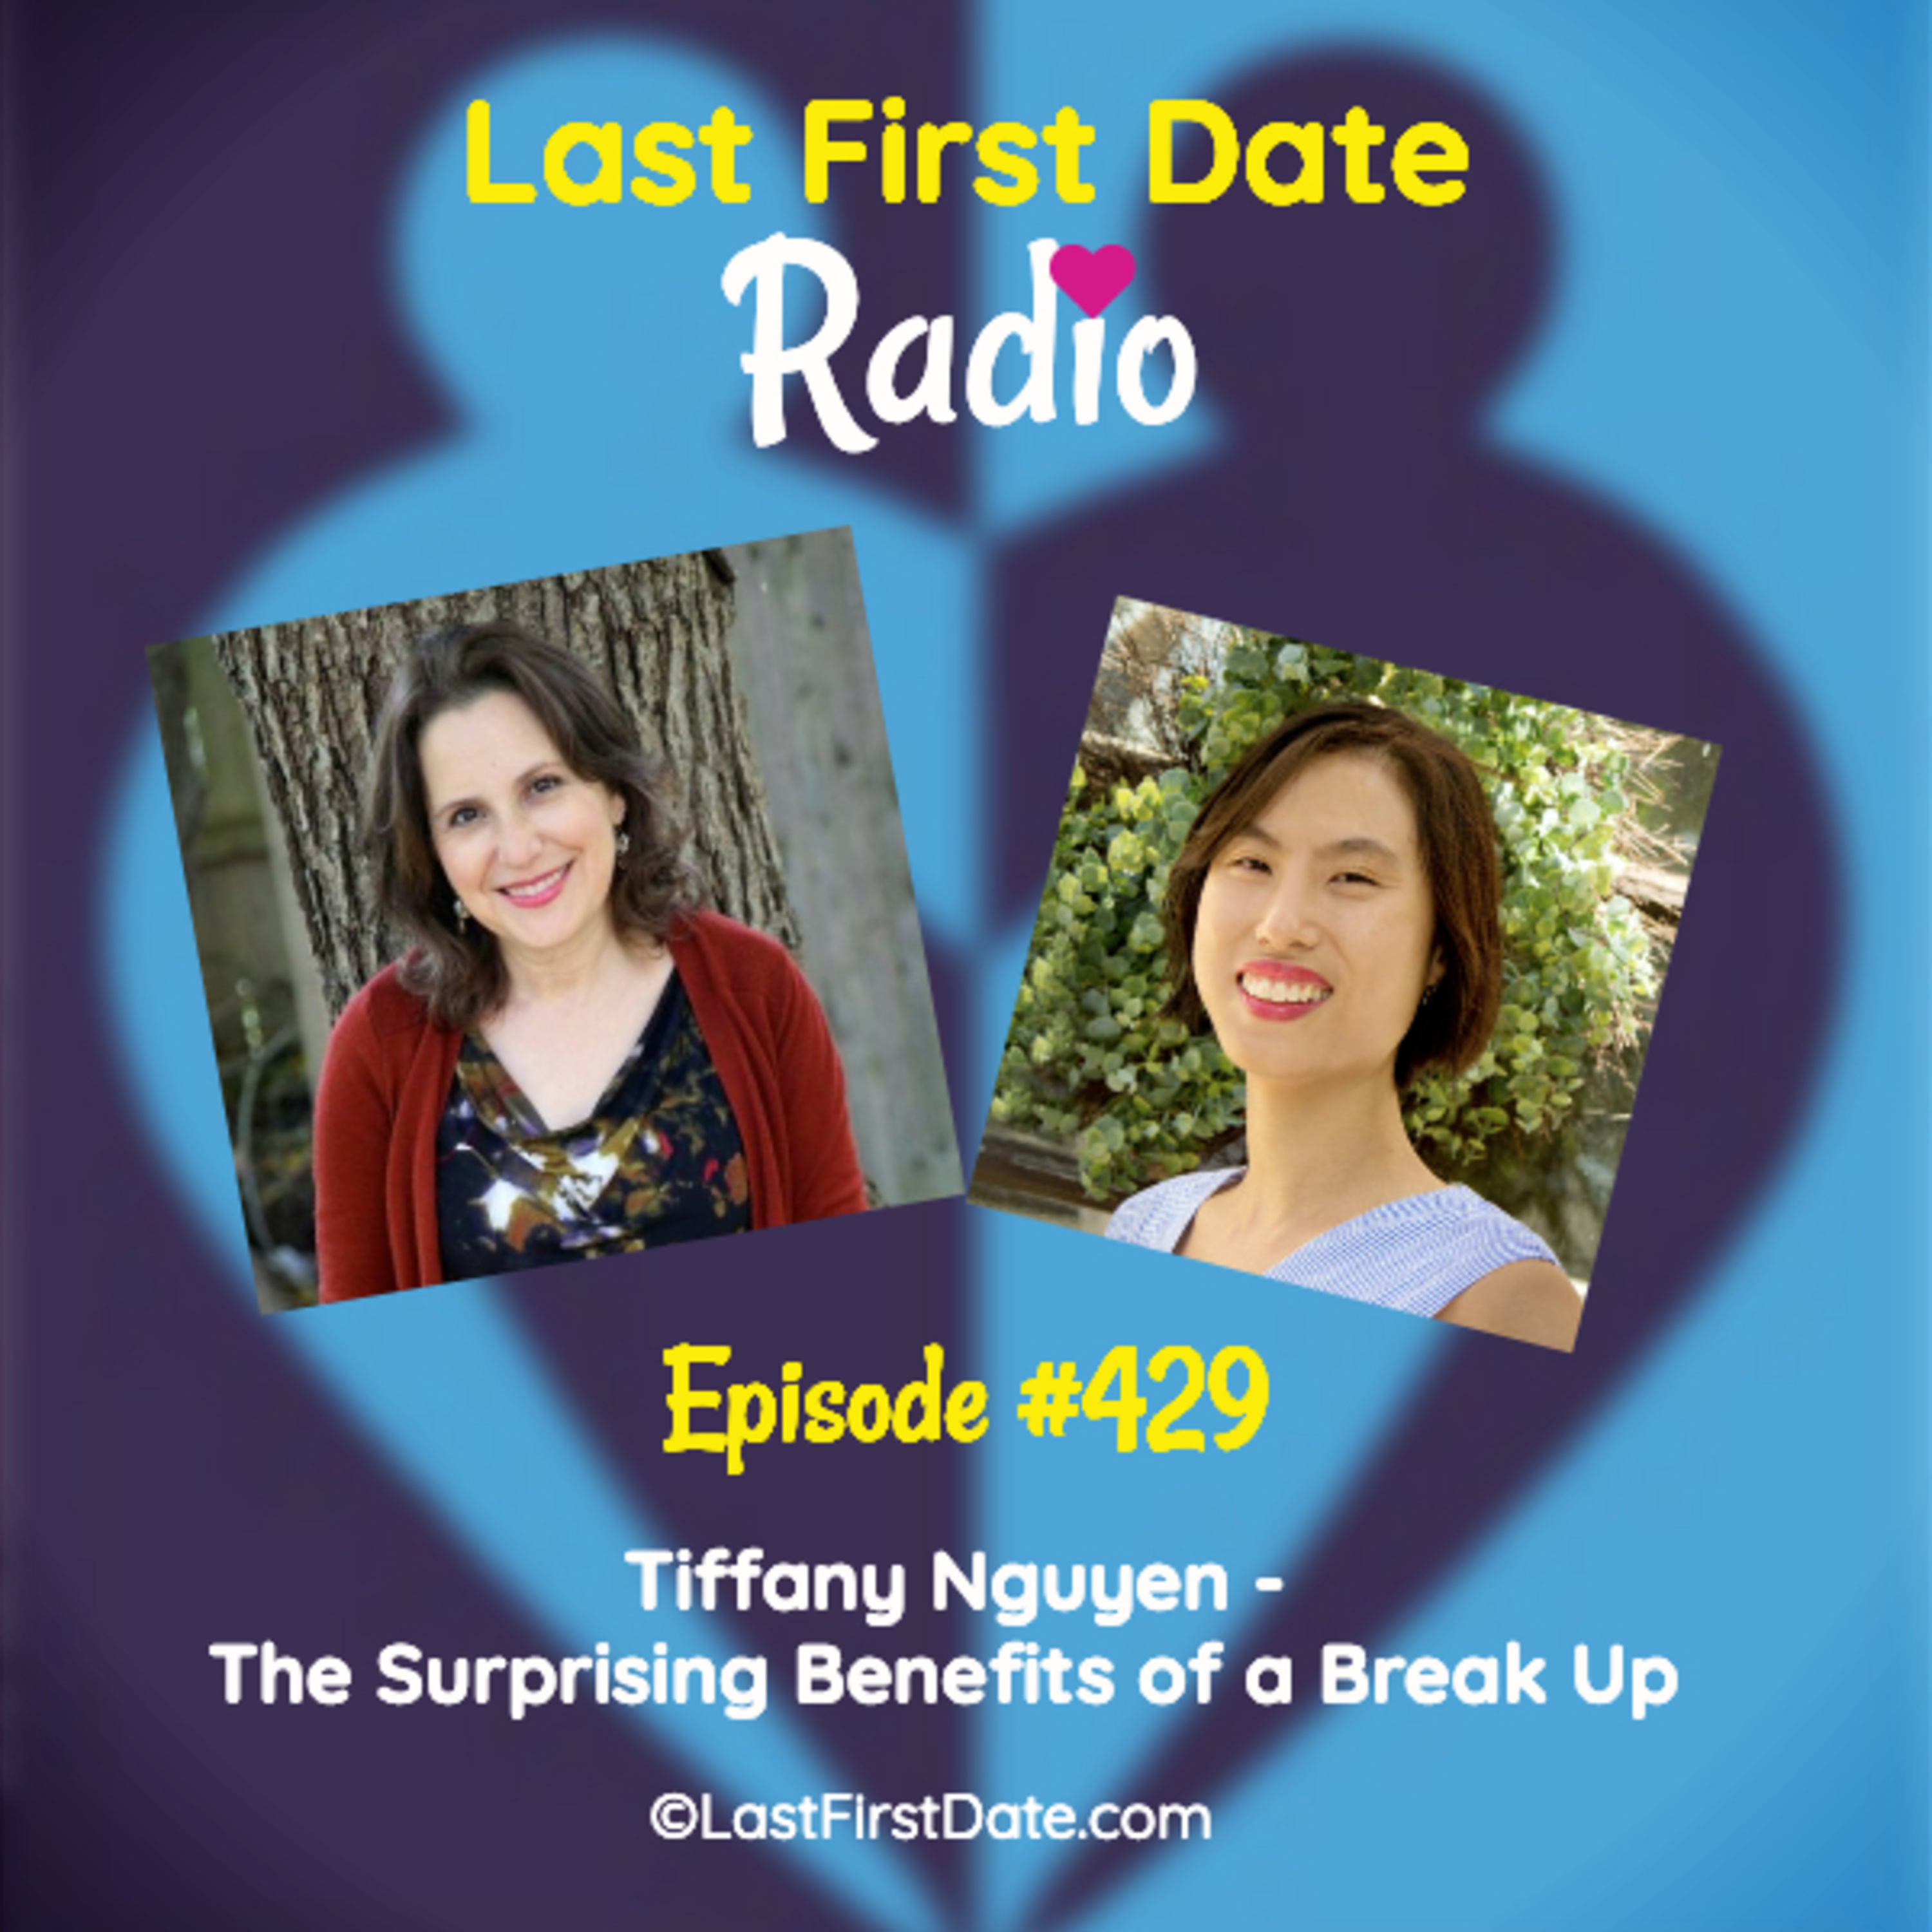 Last First Date Radio - EP 429: Tiffany Nguyen - The Surprising Benefits of a Break Up